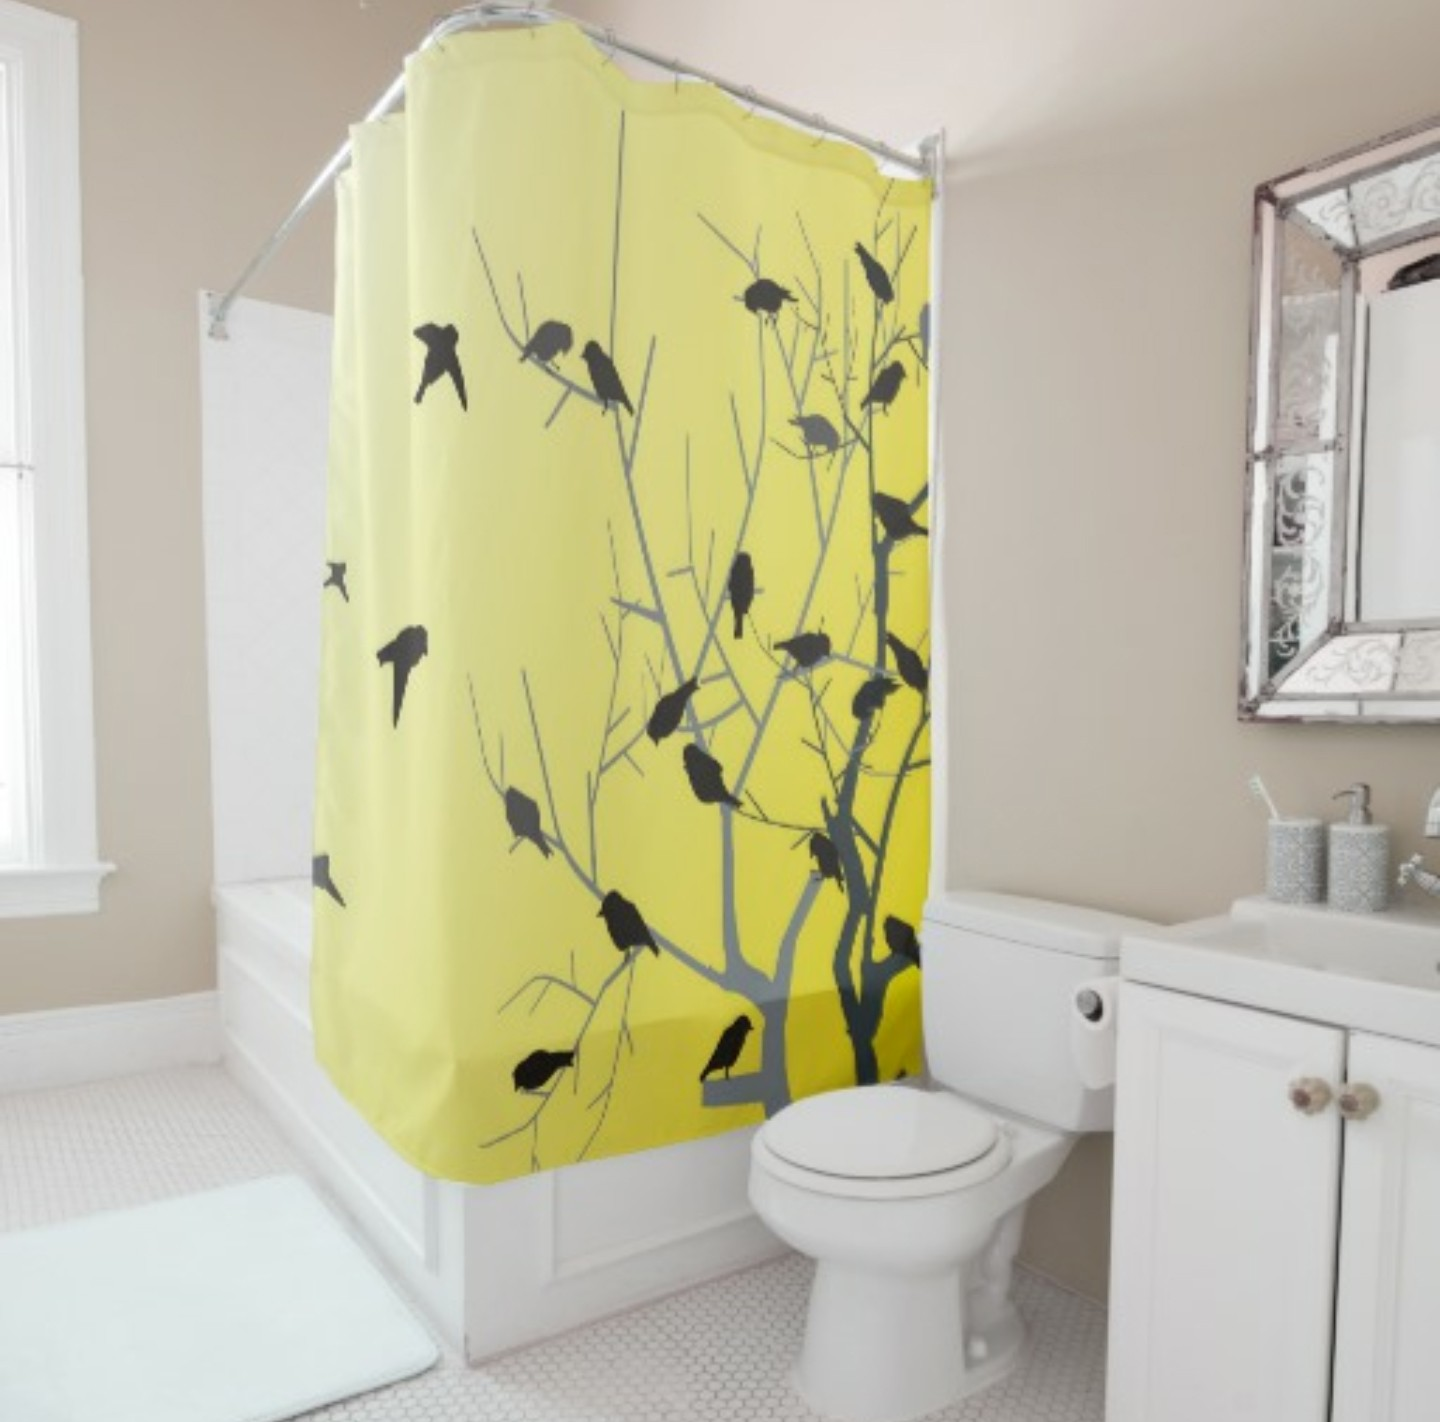 print x superb bird curtain part curtains com churchtelemessagingsystem shower amazing botanical